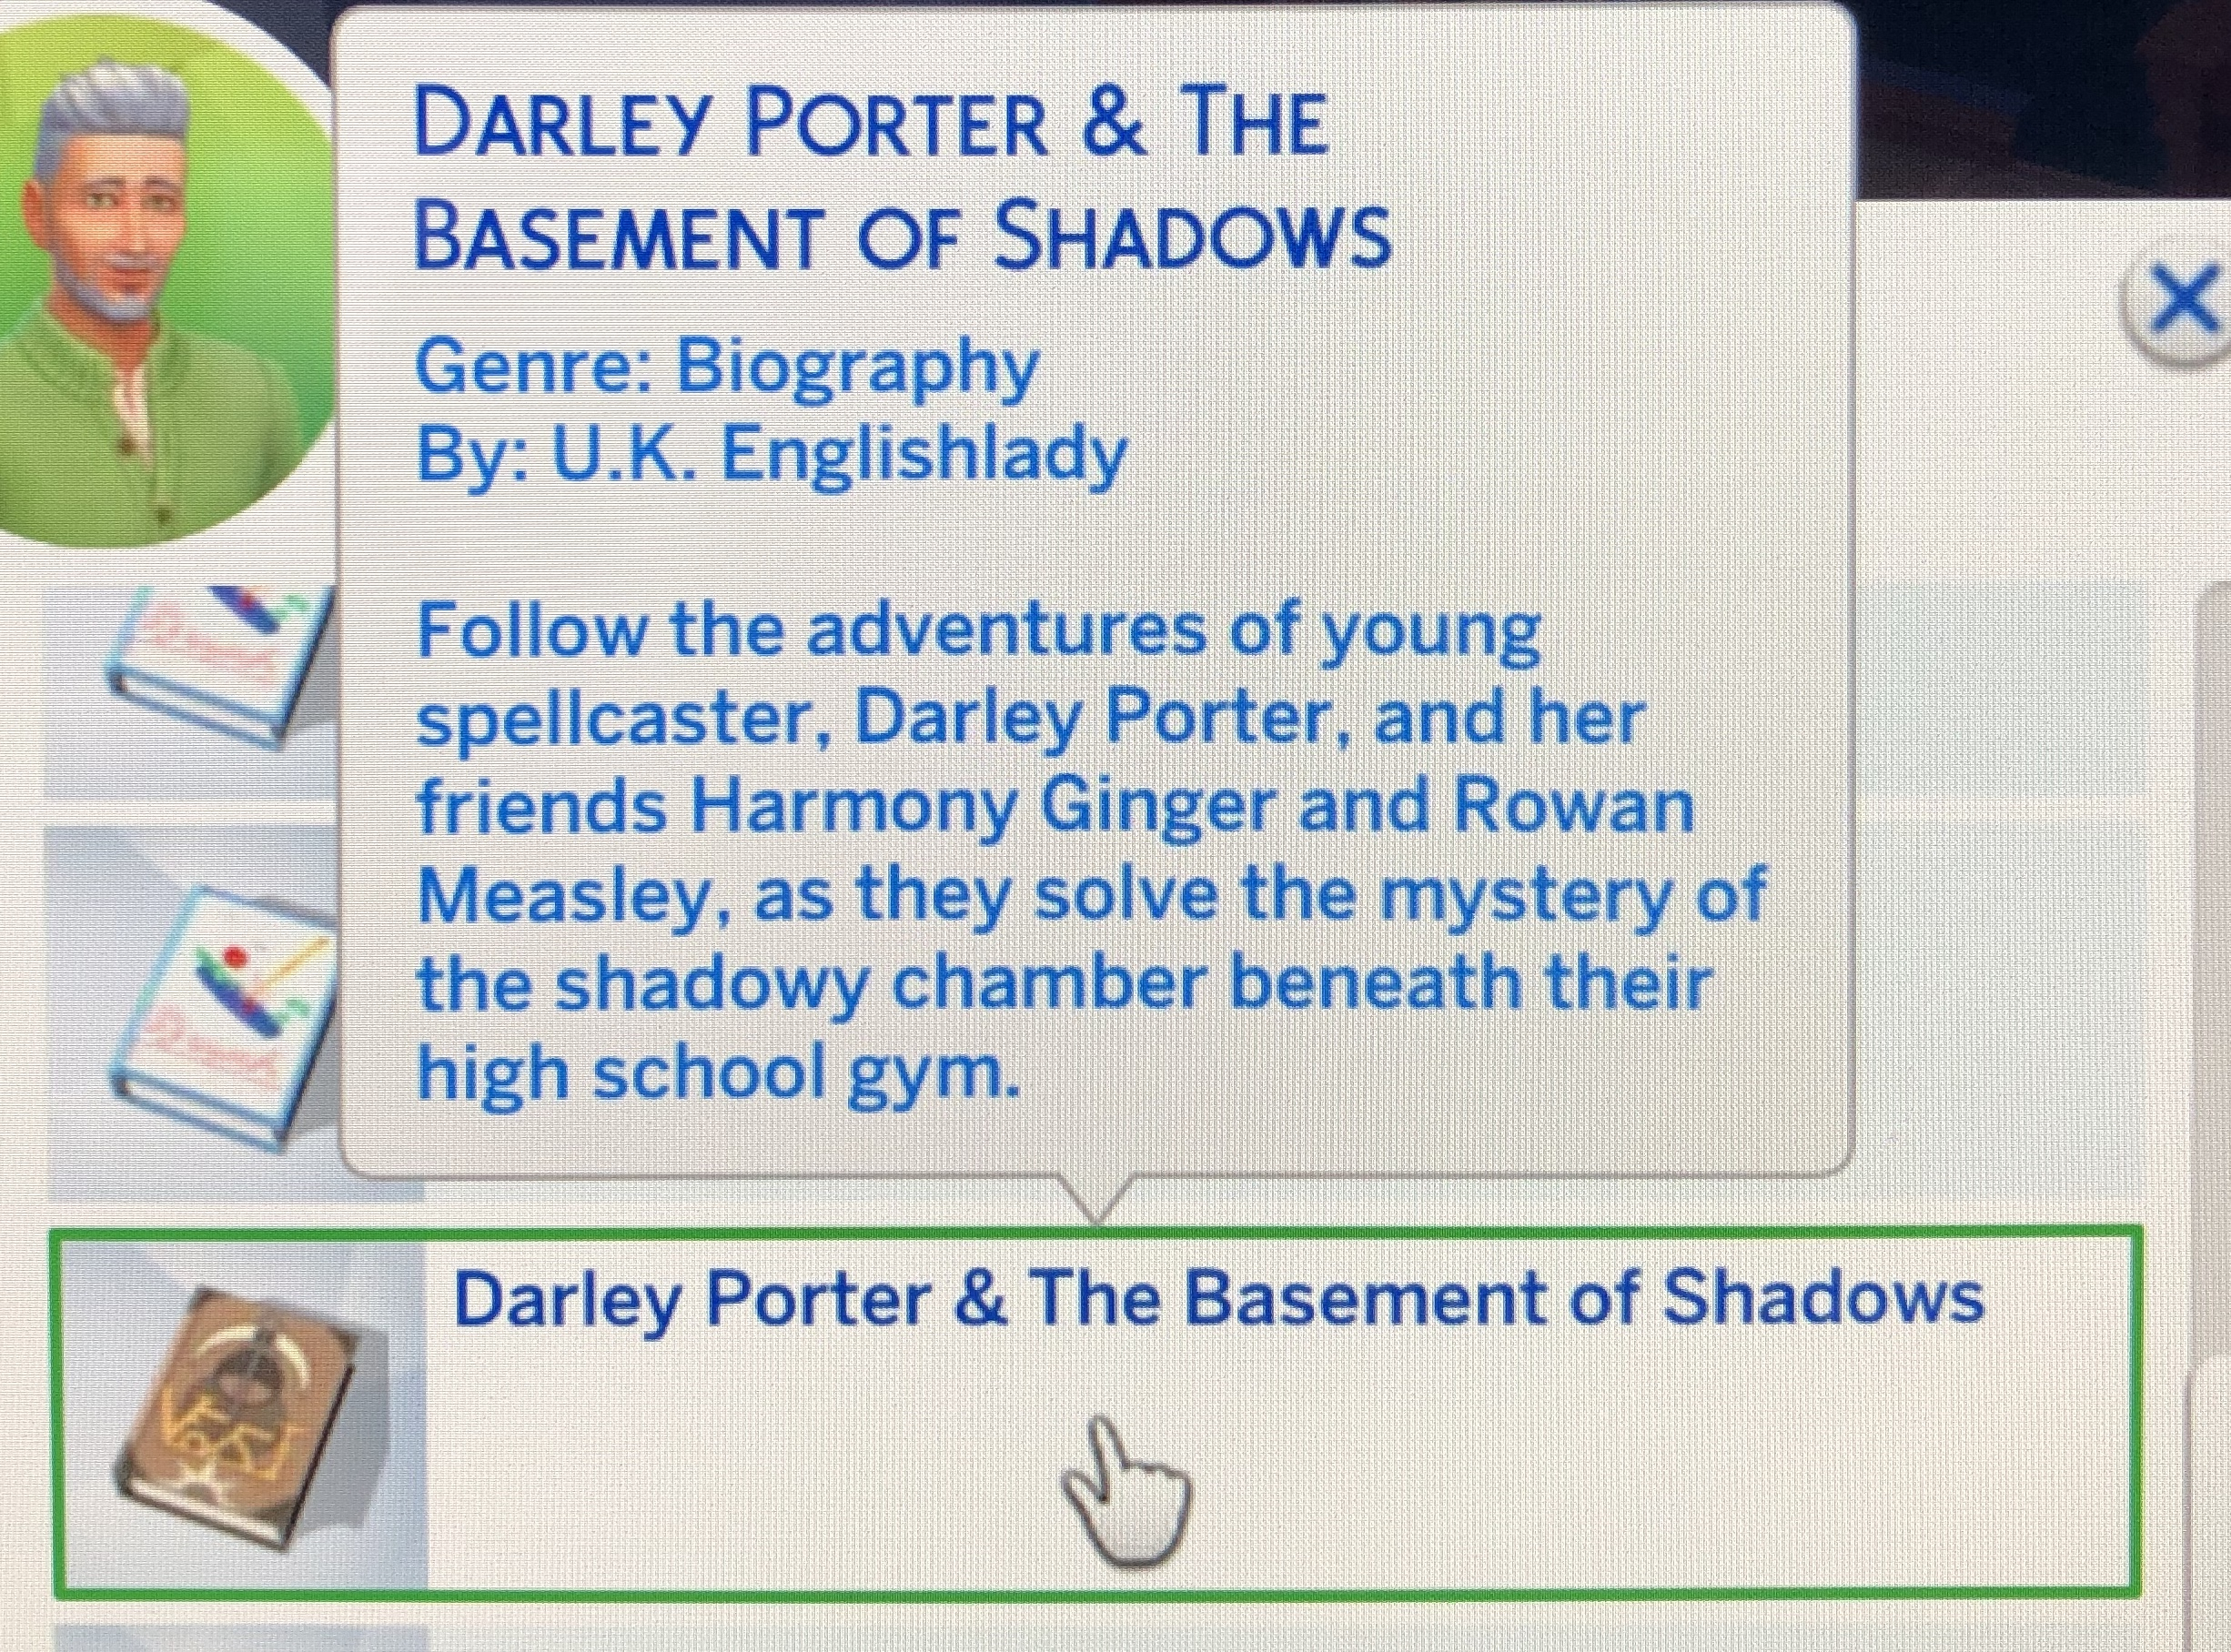 Screenshot from the Sims: book description called Darley Porter and the Basement of Shadows